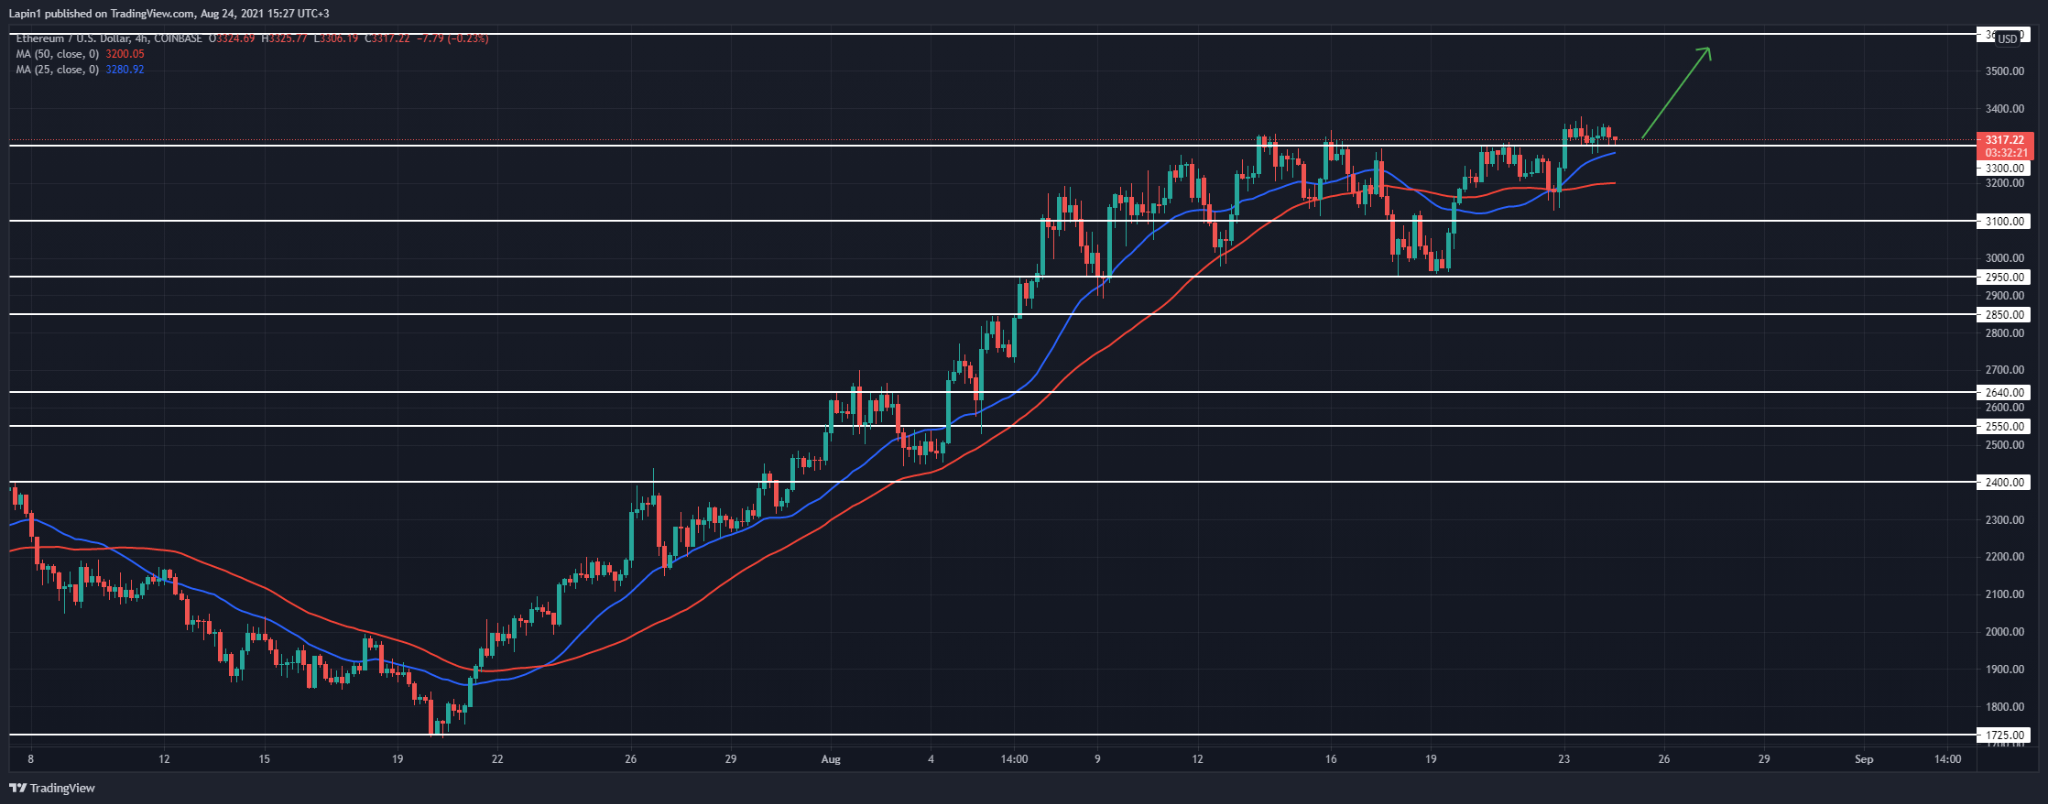 Ethereum Price Analysis: ETH consolidates above $3,300, targets $3,600 next?